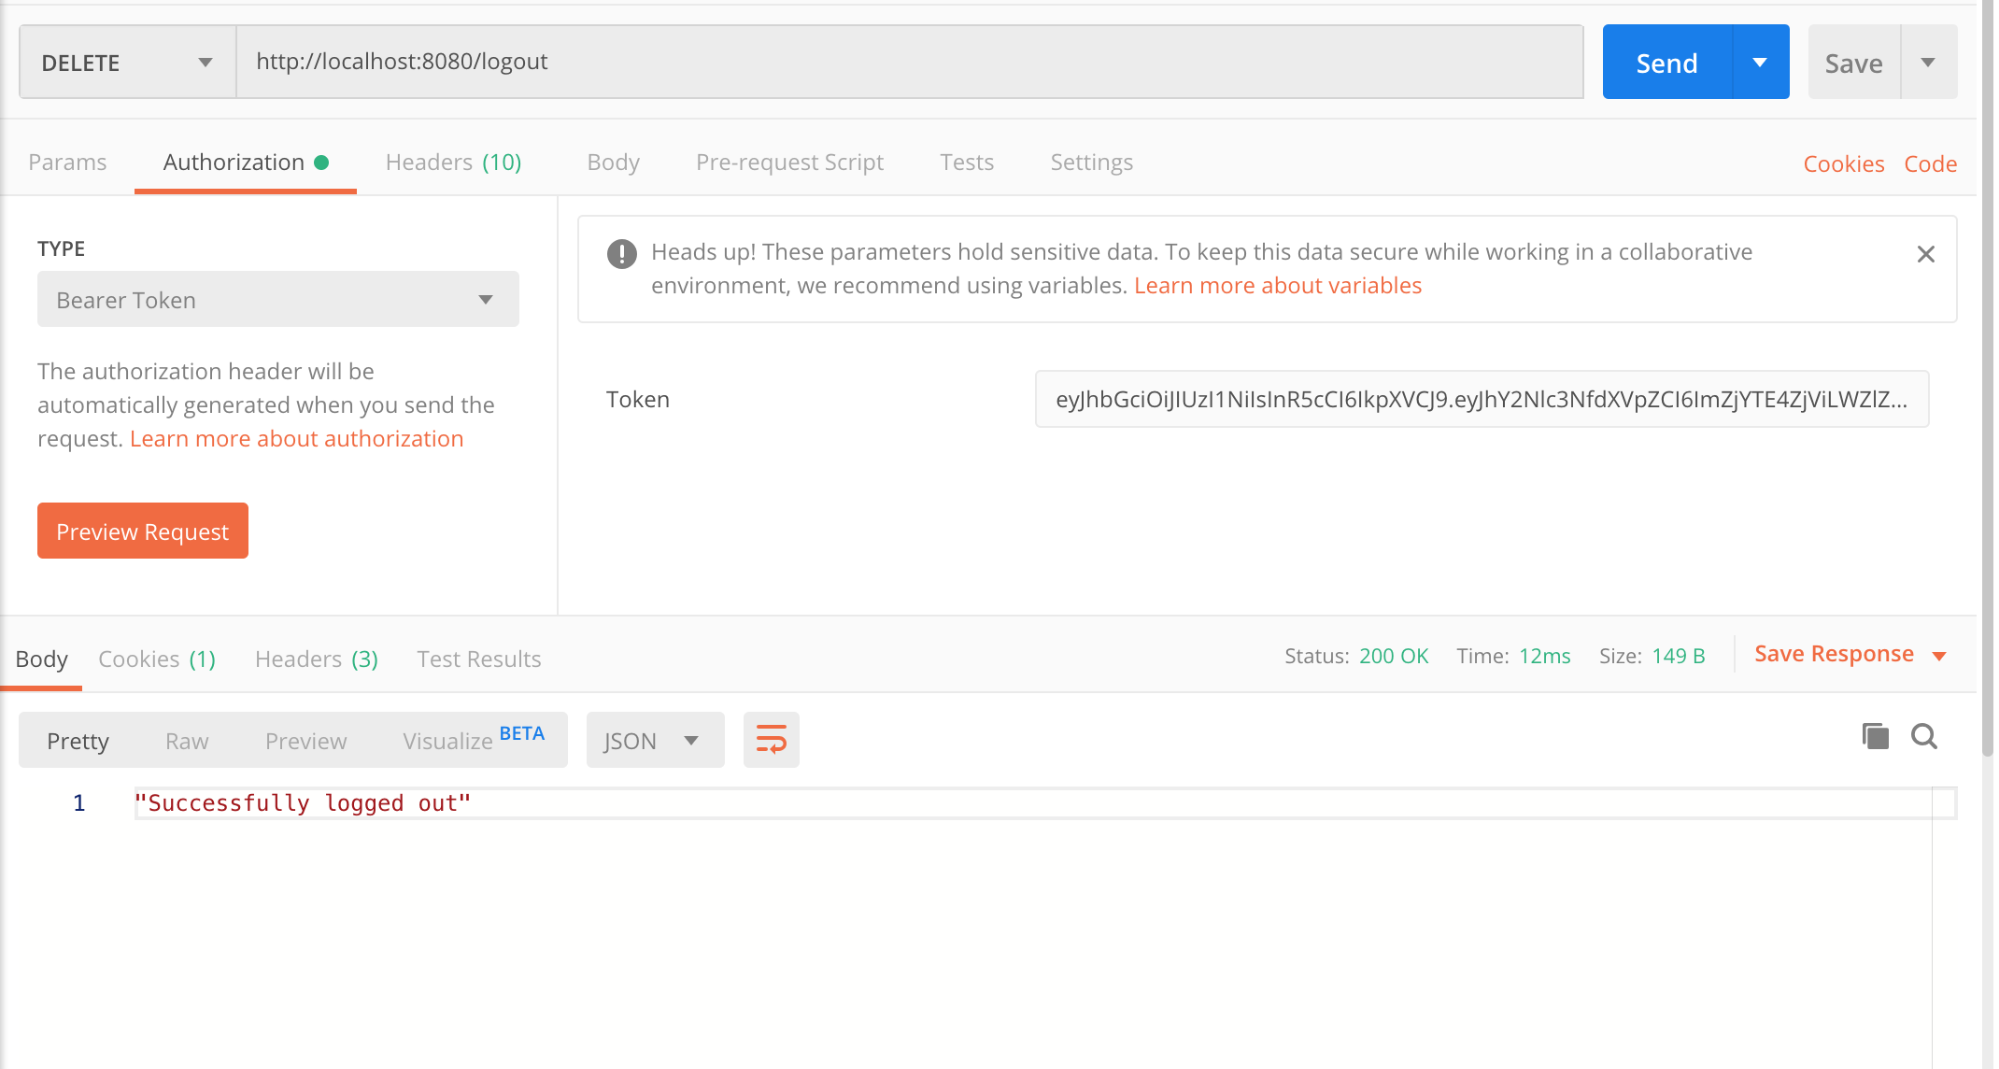 Log out request using Postman